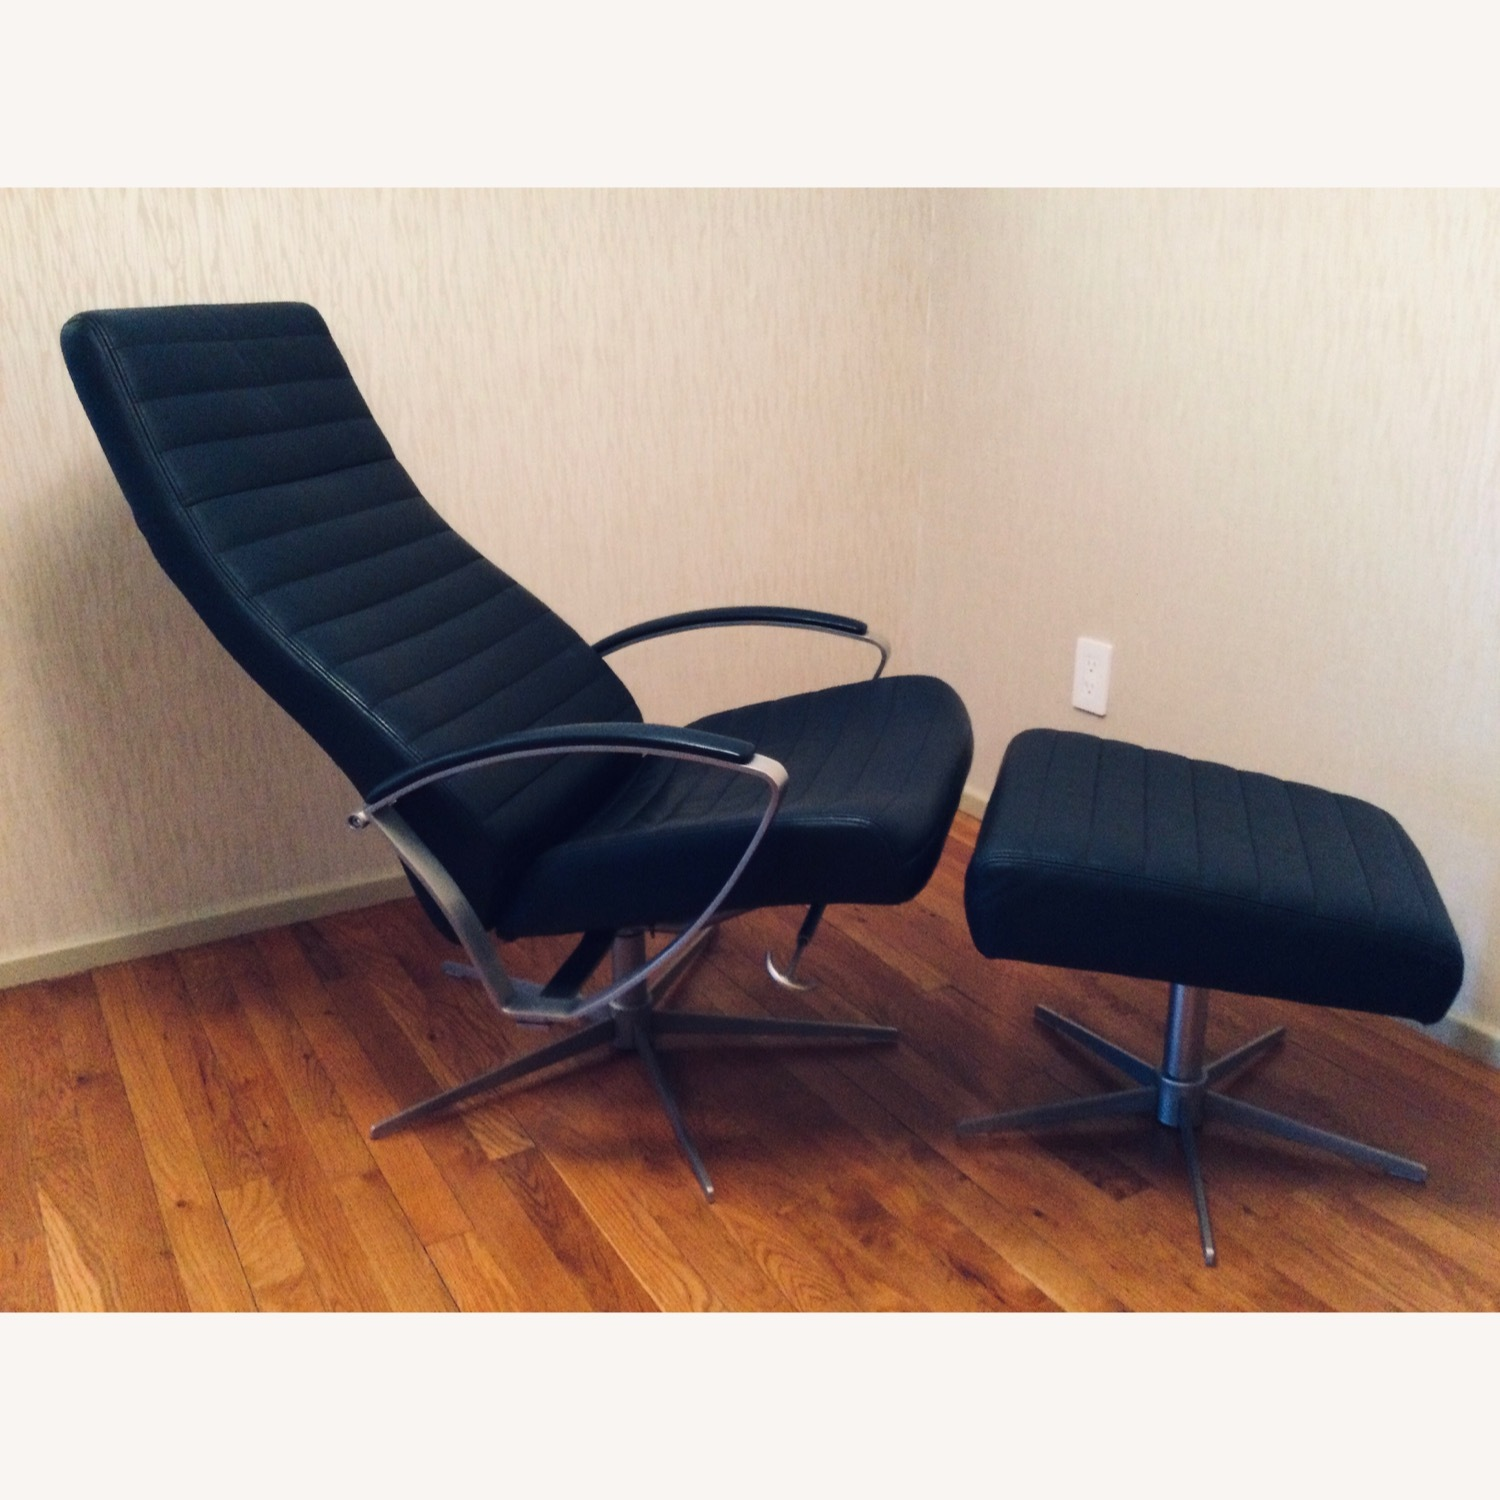 Black Recliner w/Ottoman by BoConcept - image-7